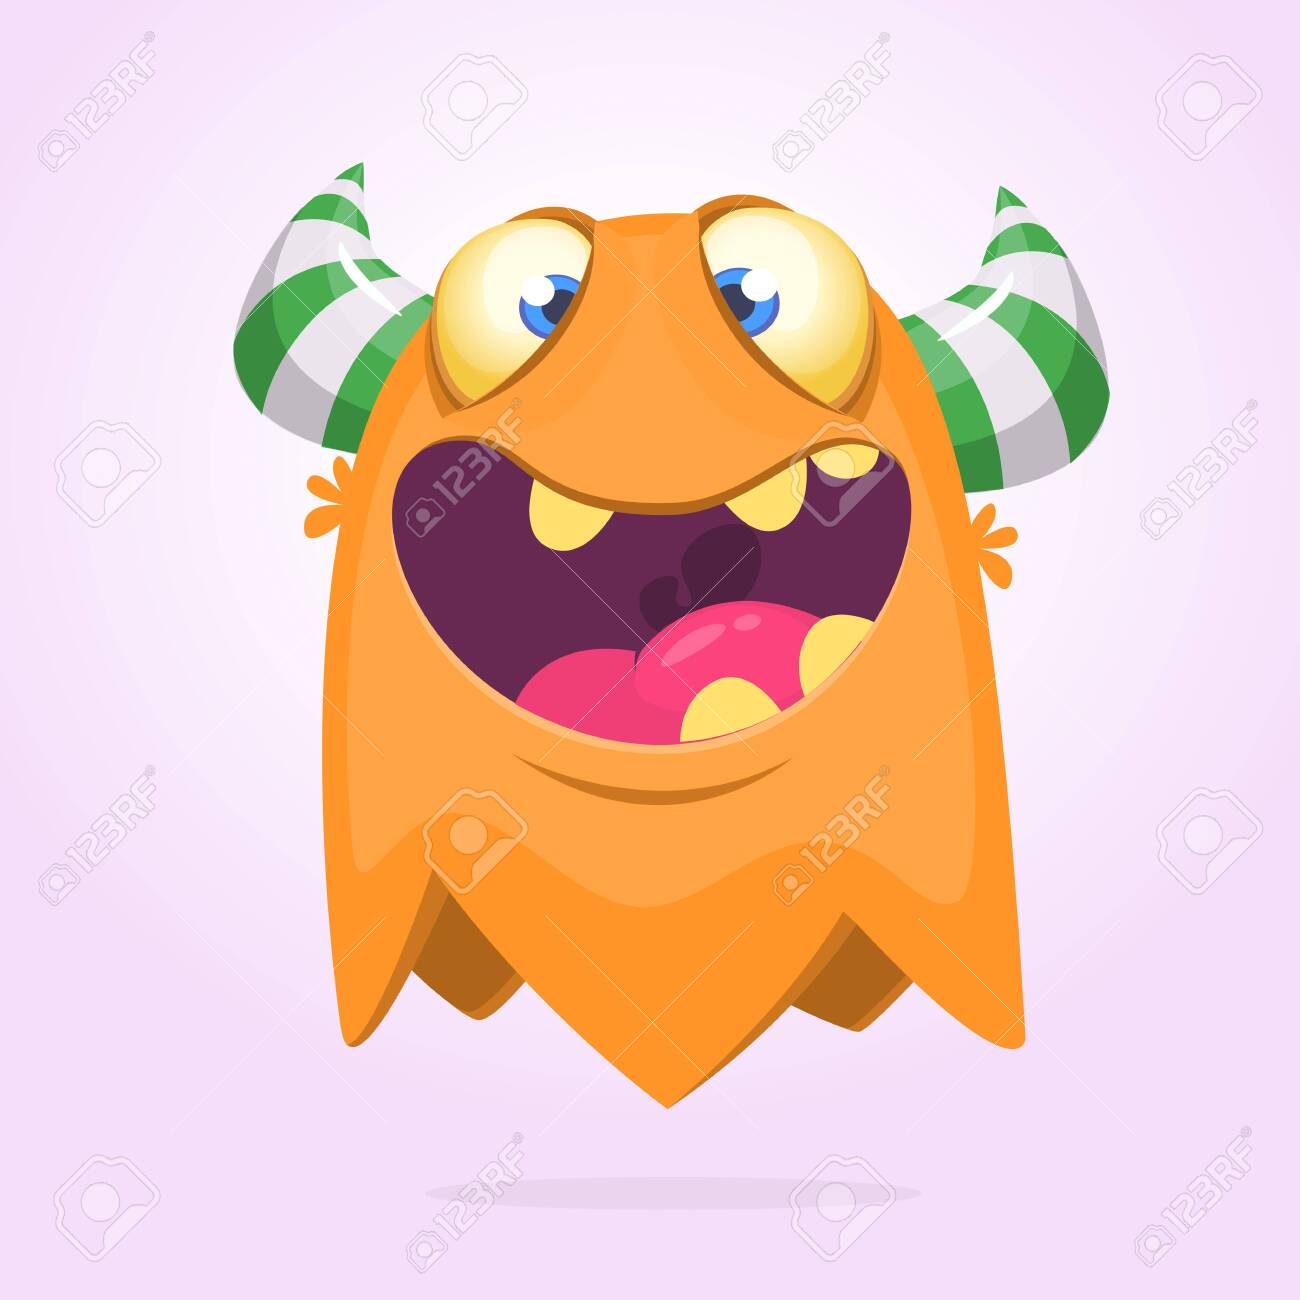 Angry Orange Cartoon Monster With Horns Big Collection Of Cute Royalty Free Cliparts Vectors And Stock Illustration Image 129251369